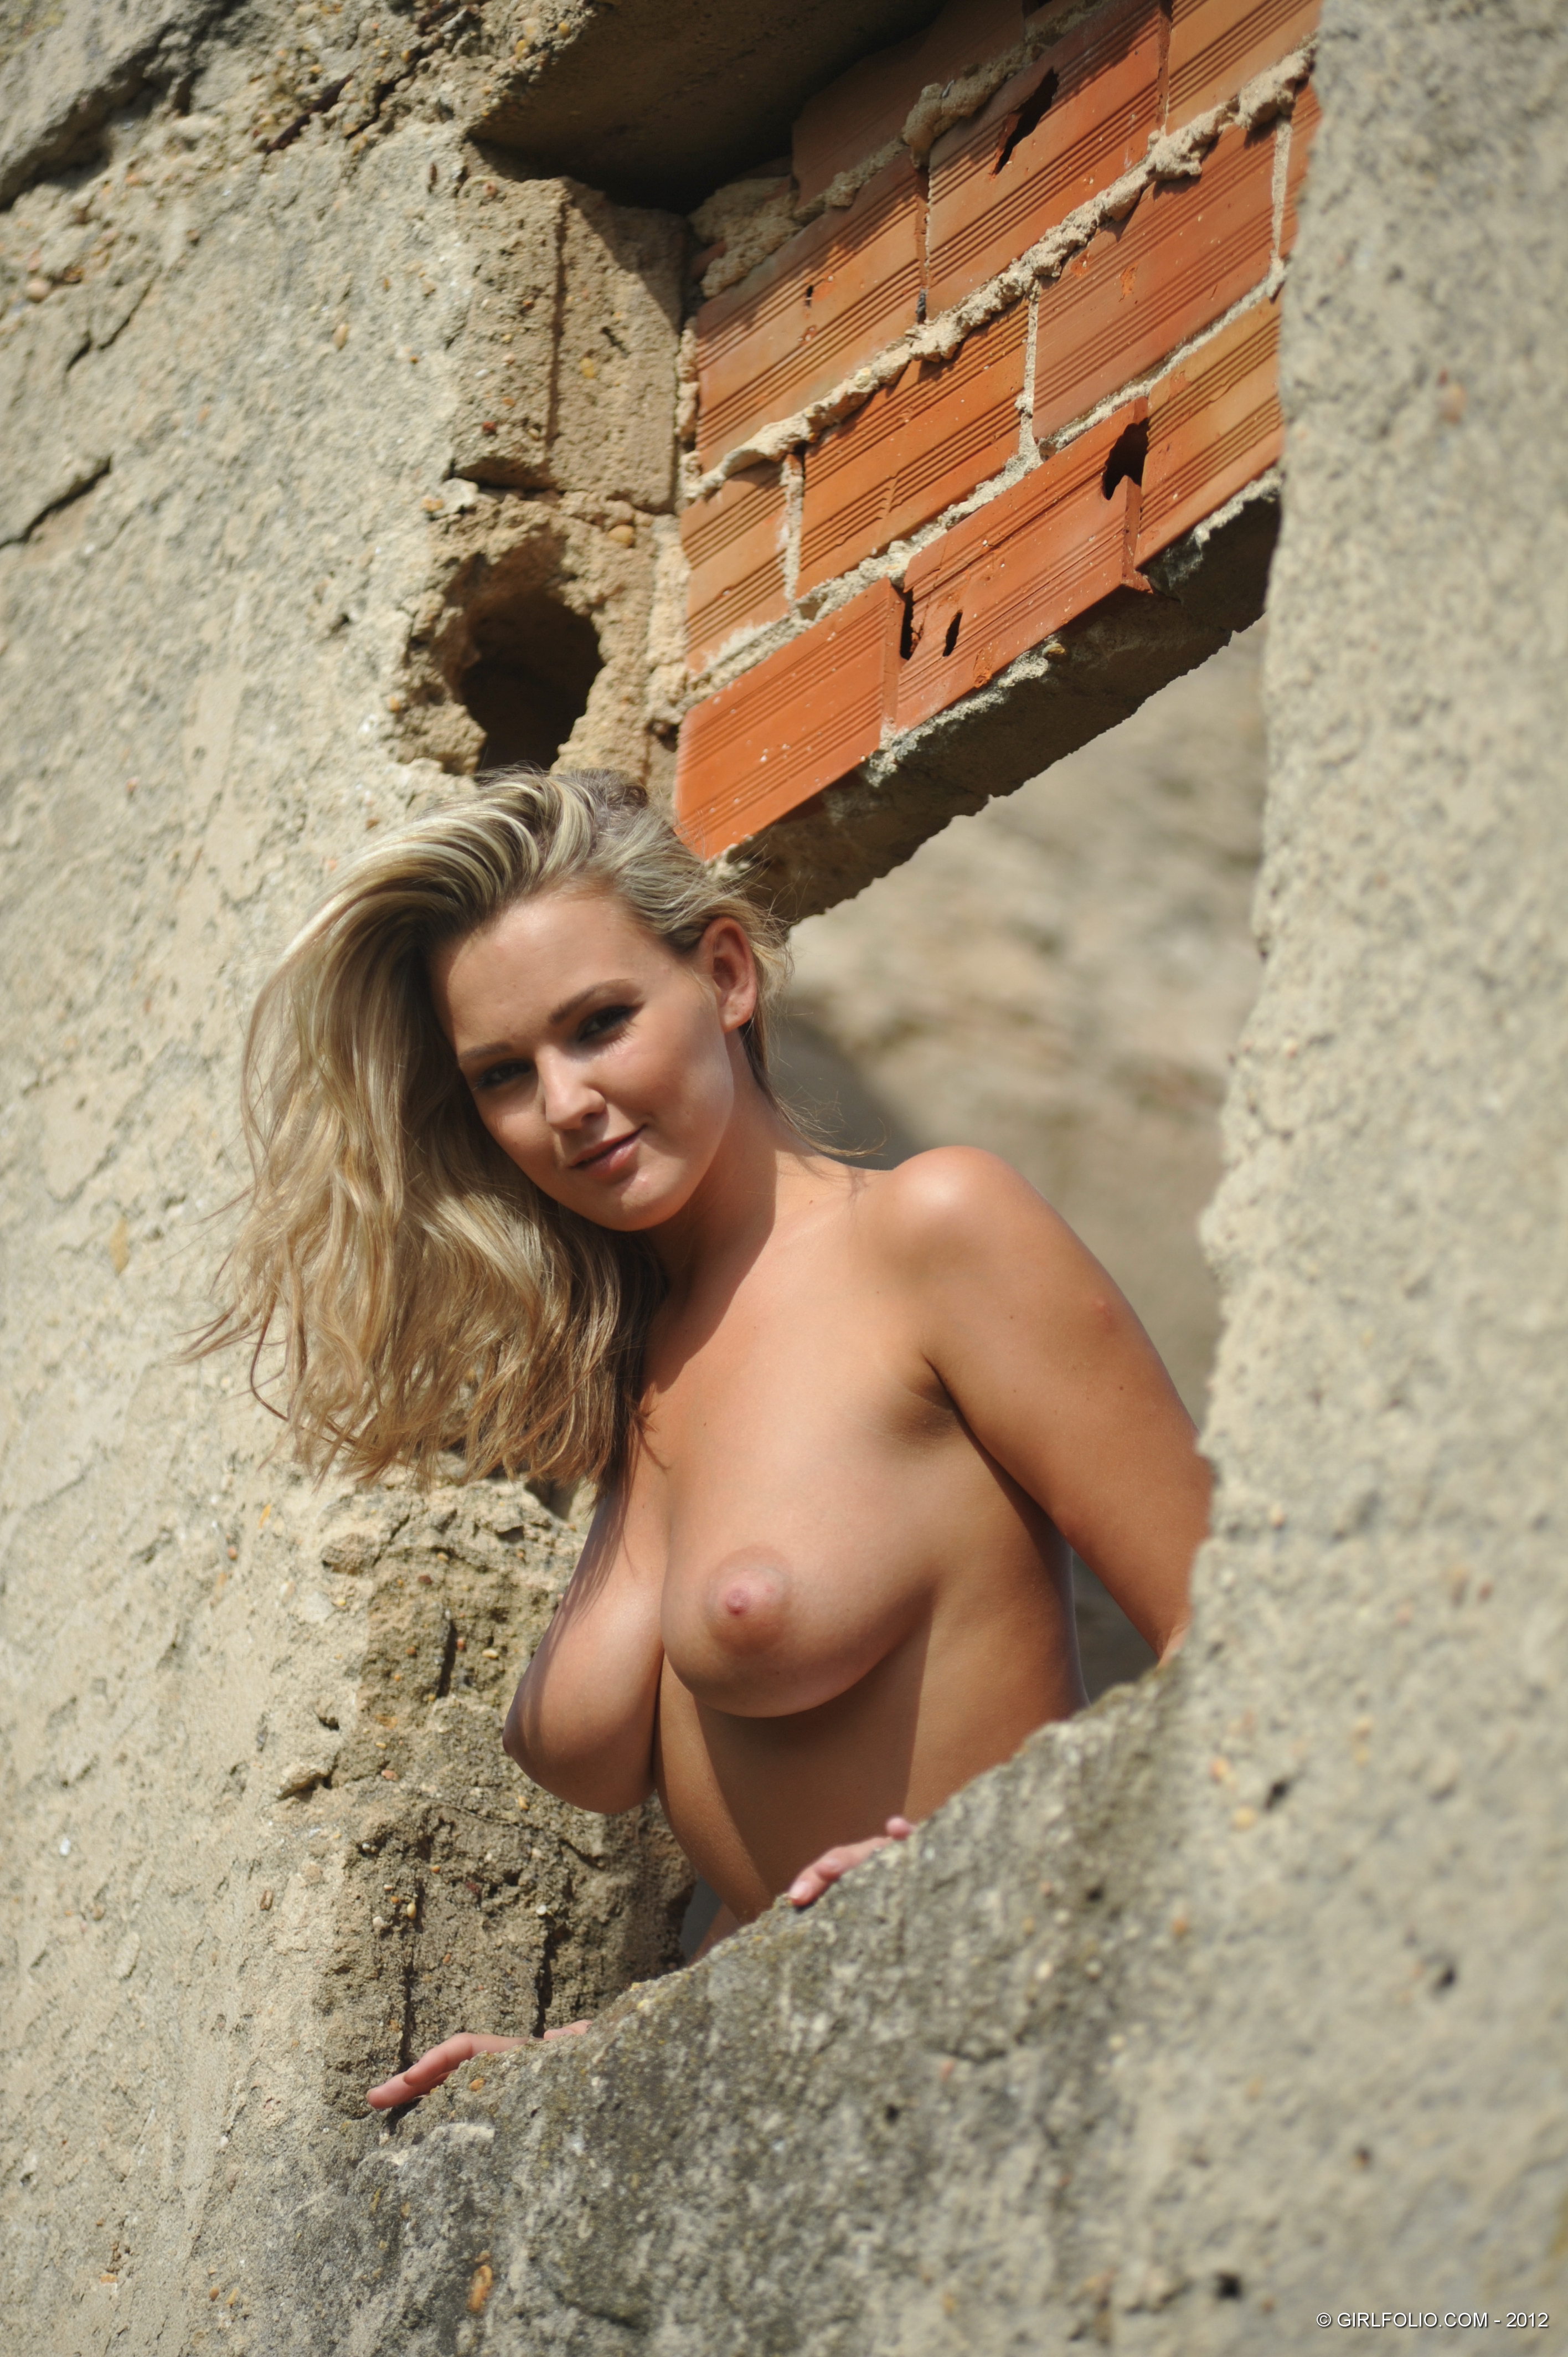 Jodie Gasson - Feel the curves boobs and hot bods